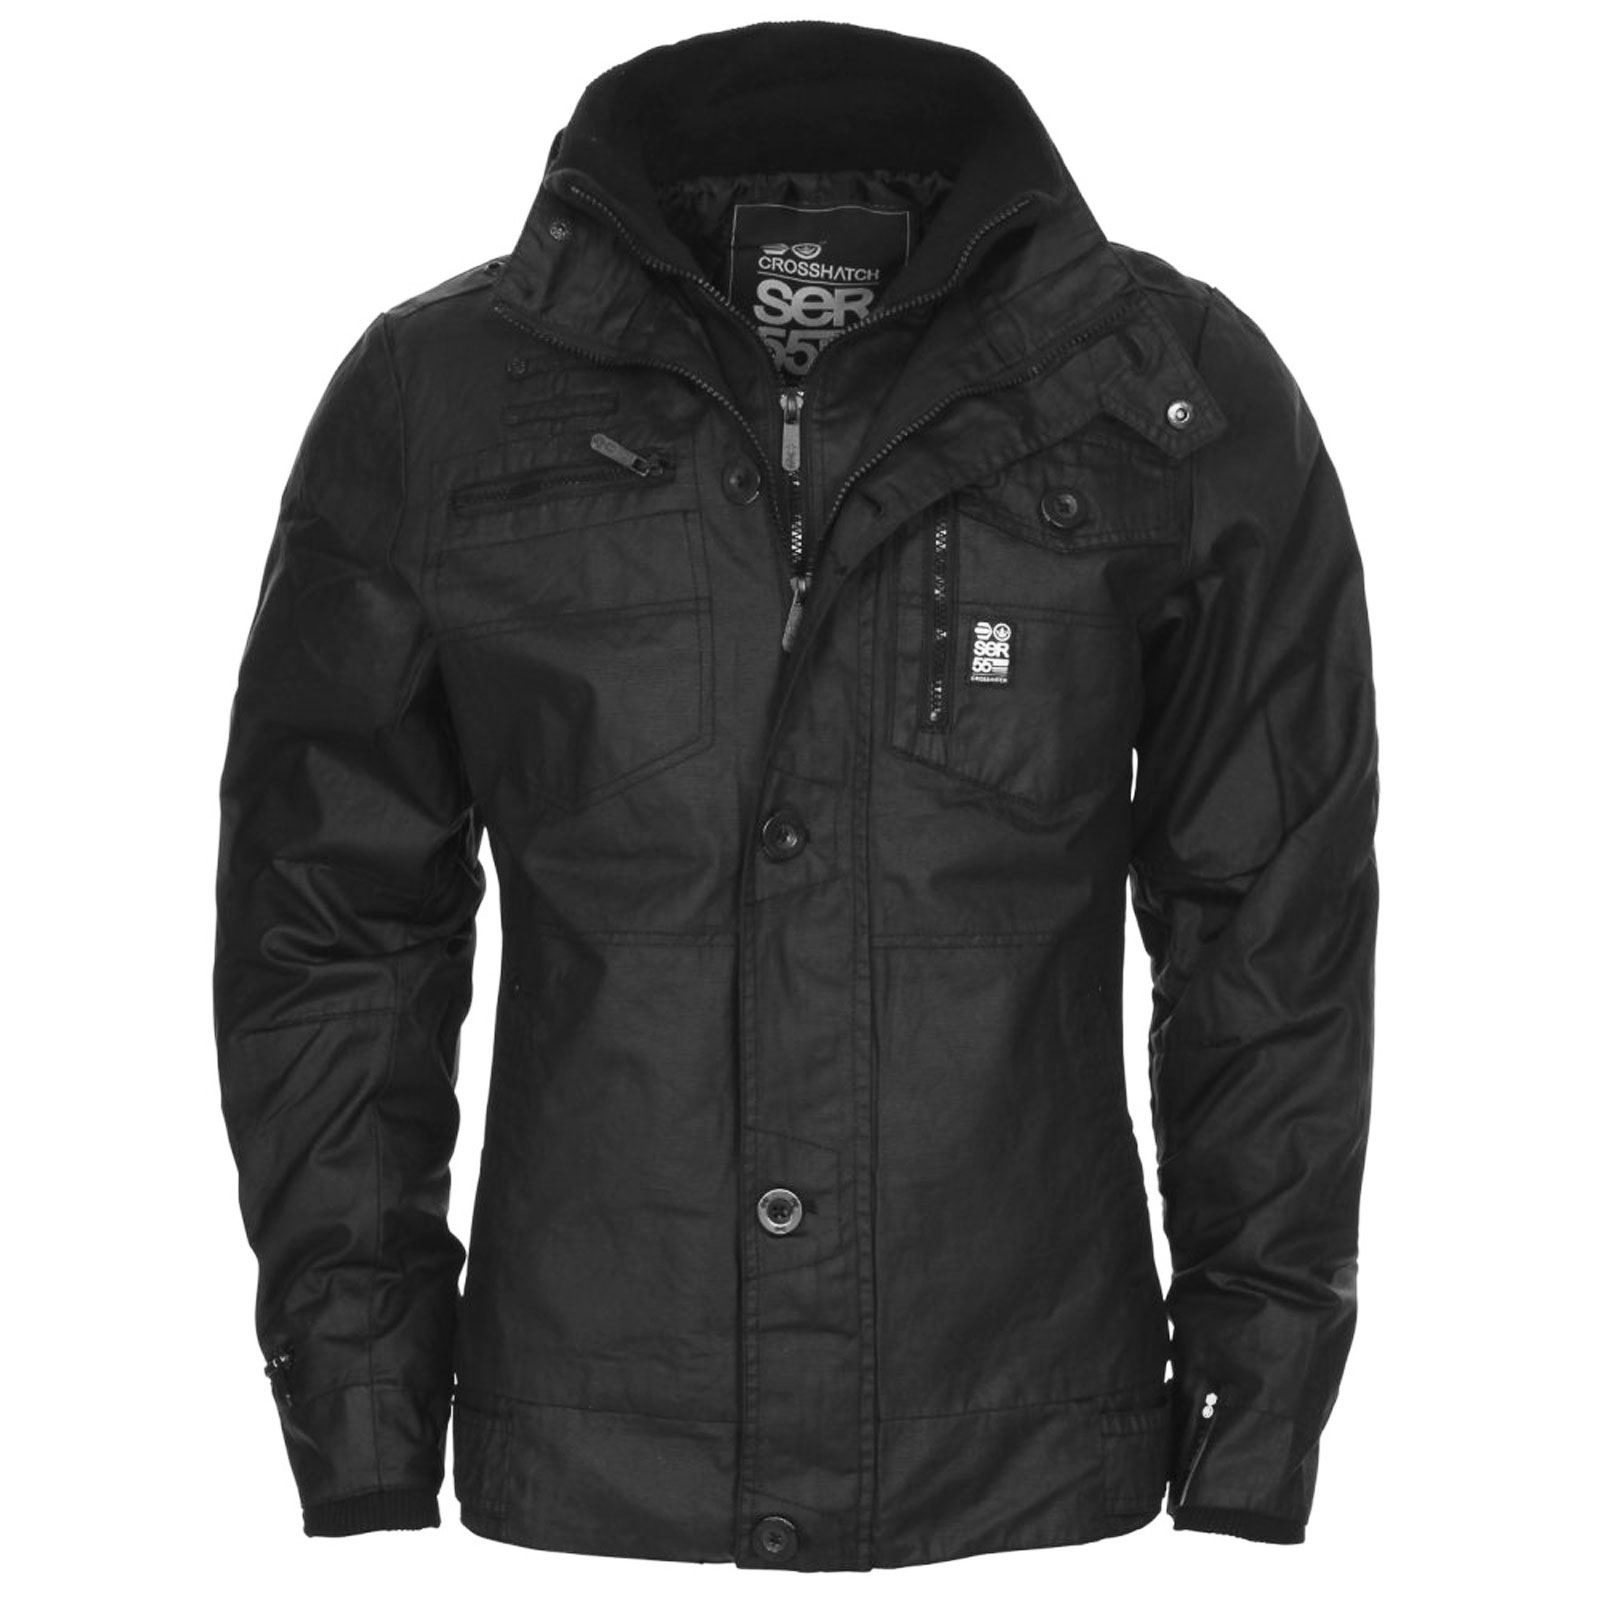 Great Deals on Coats & Jackets for Men. Look cool with our selection of affordable and comfortable men's coats. Whether you're looking for casual, athletic, or work jackets, we have them all for you! Find your favorite brands here at JCPenney like Nike, Adidas, Carhart, Columbia, Levi's and much more.